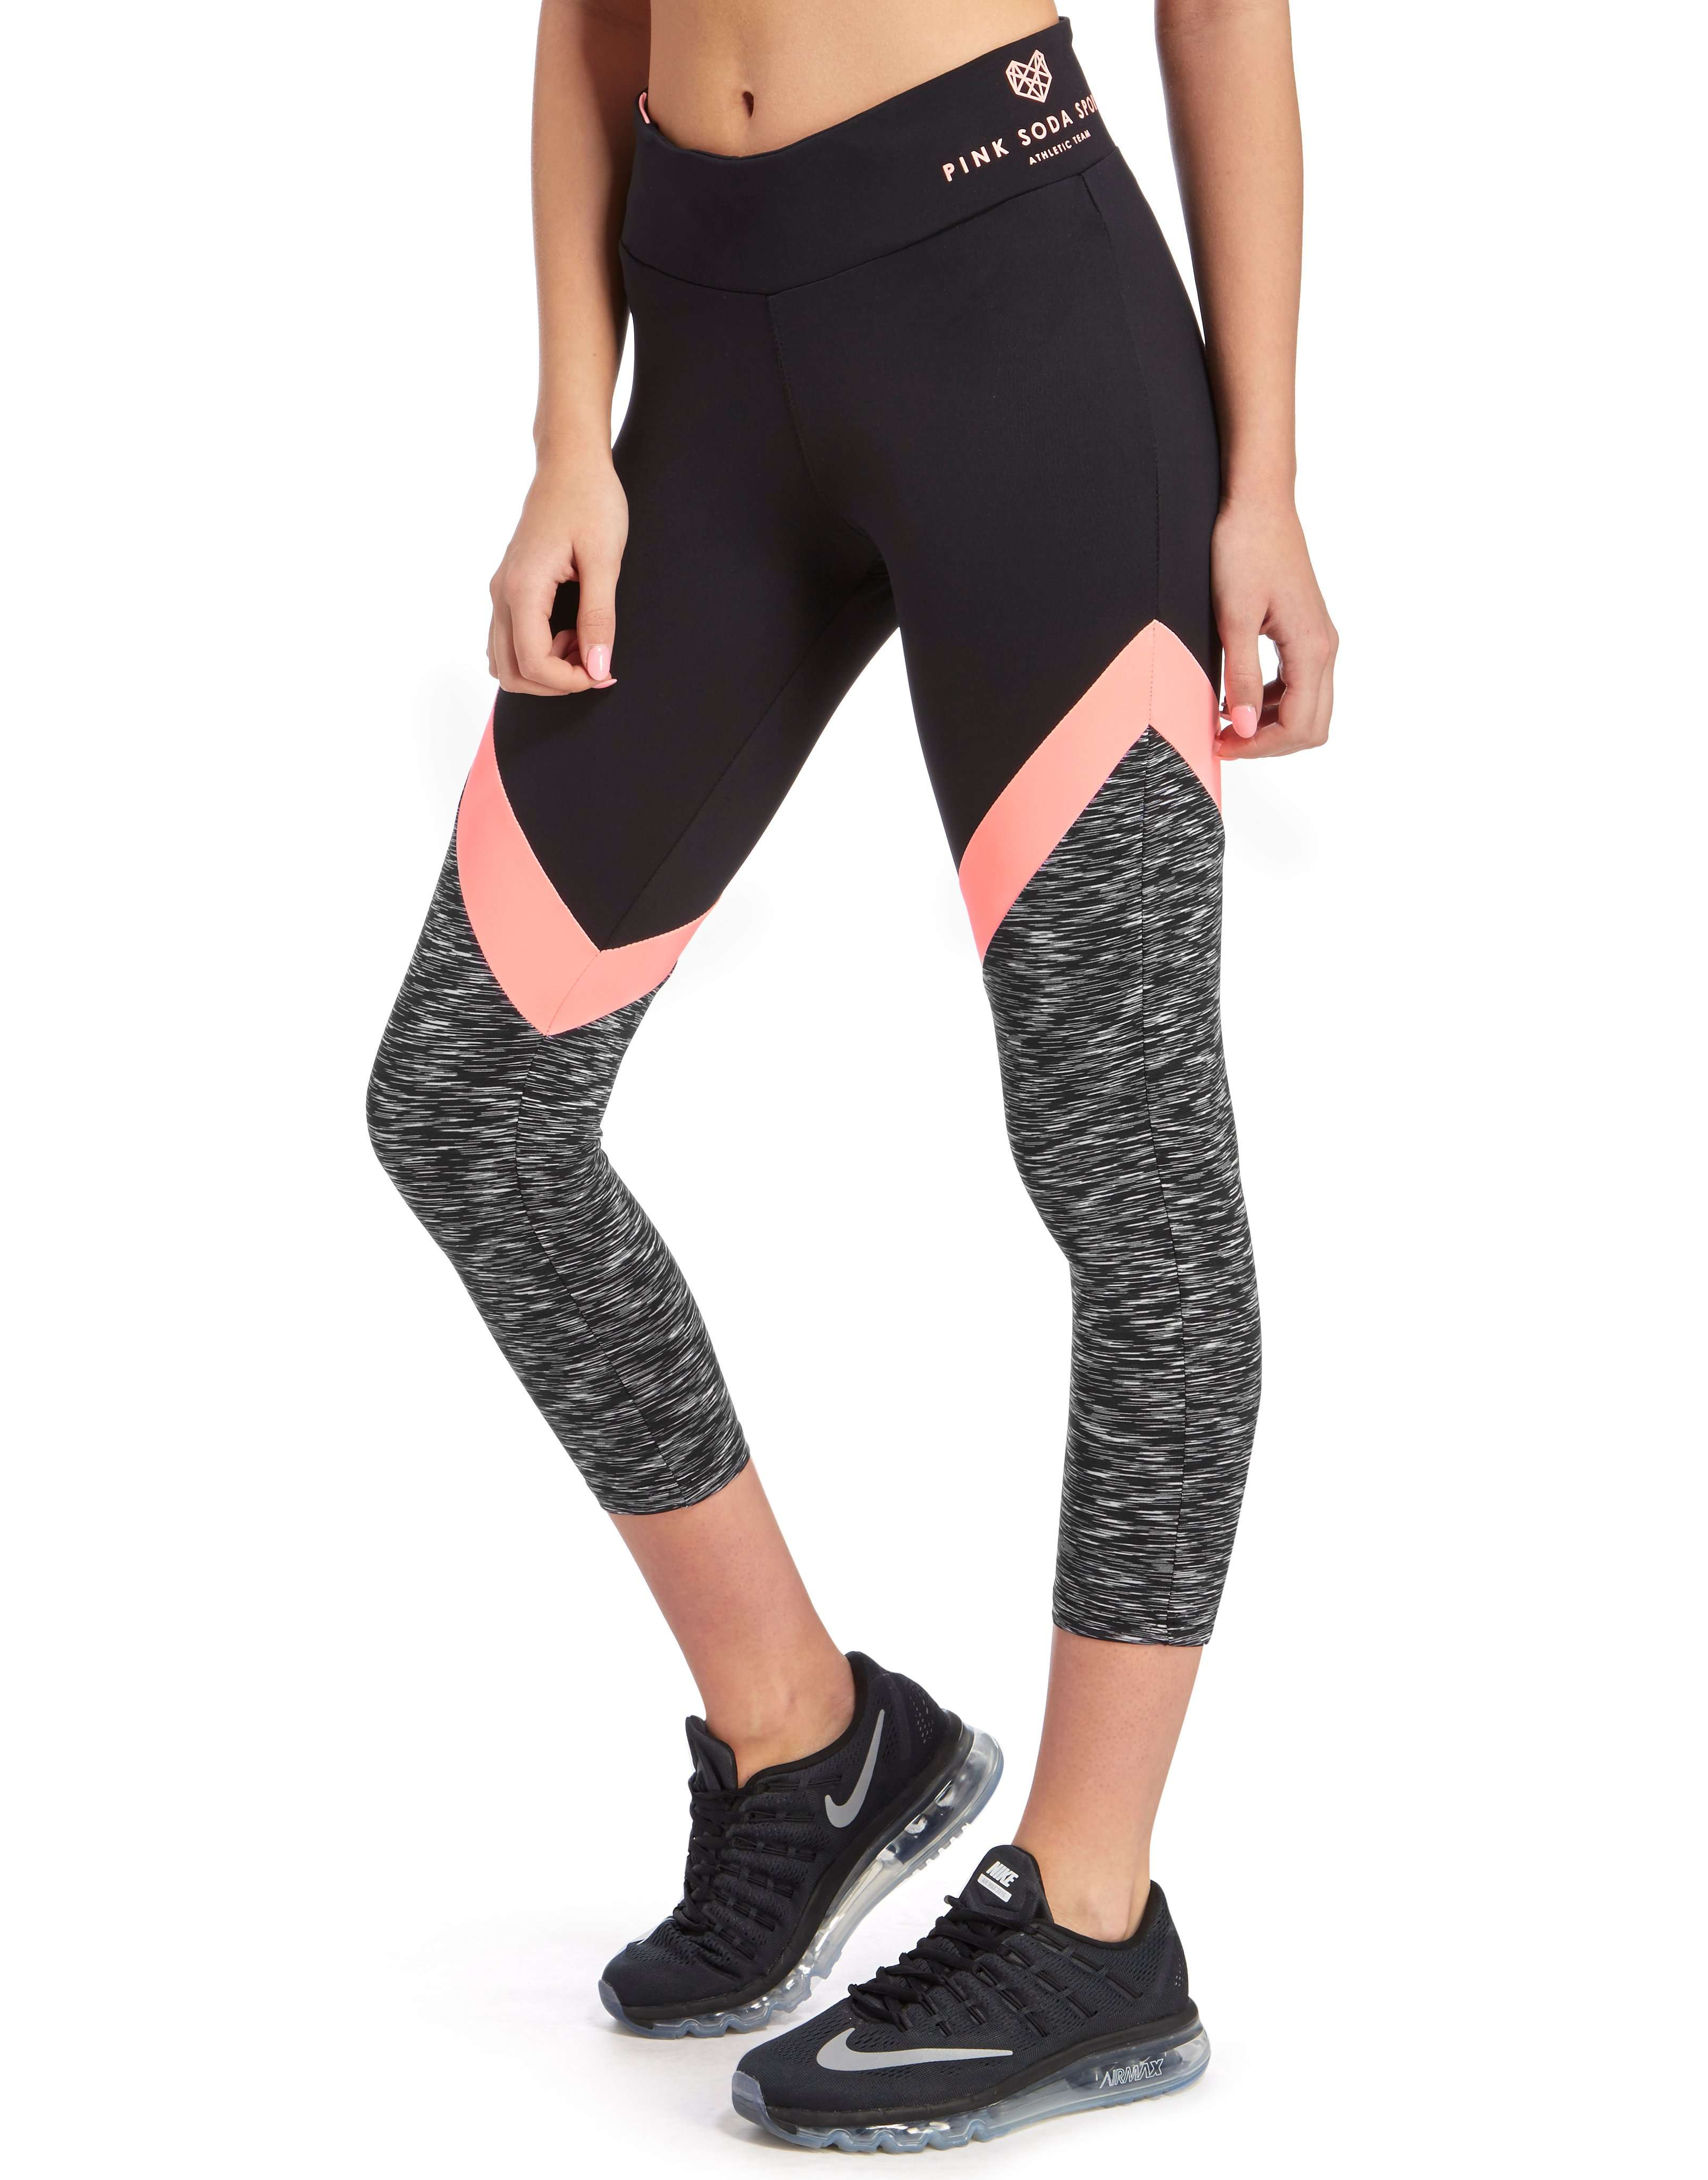 Whether you're running a race or playing some tennis, Nike women's capri move with you and keep you in the game. Choose from different styles and colors of capris for training, dance, golf, softball and more.